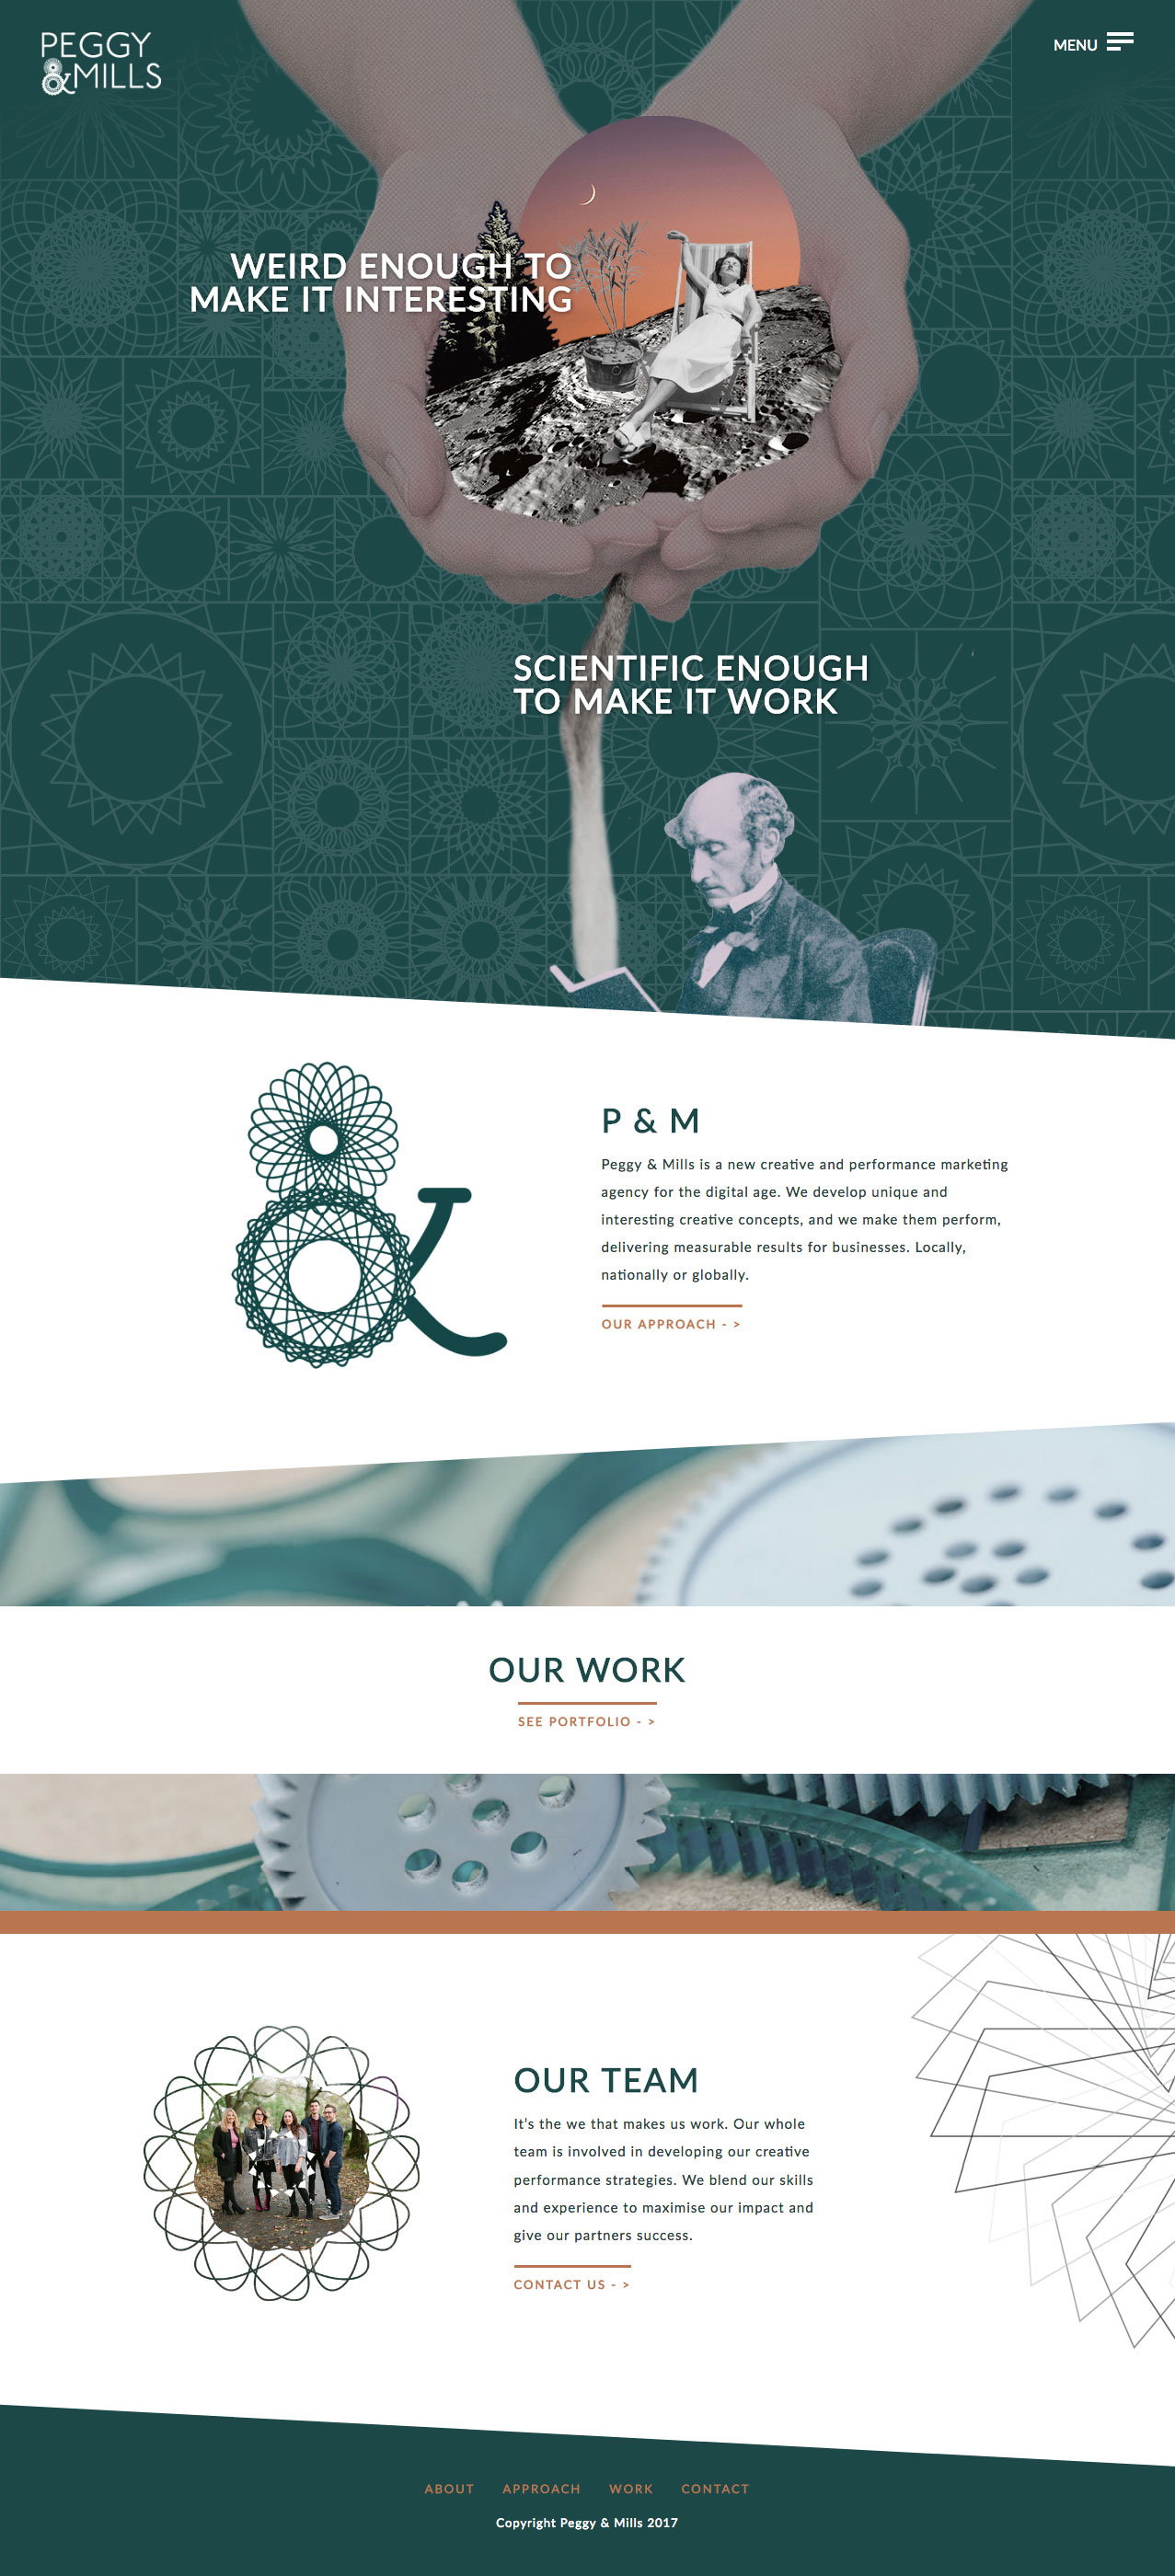 peggy-and-mills-homepage.jpg